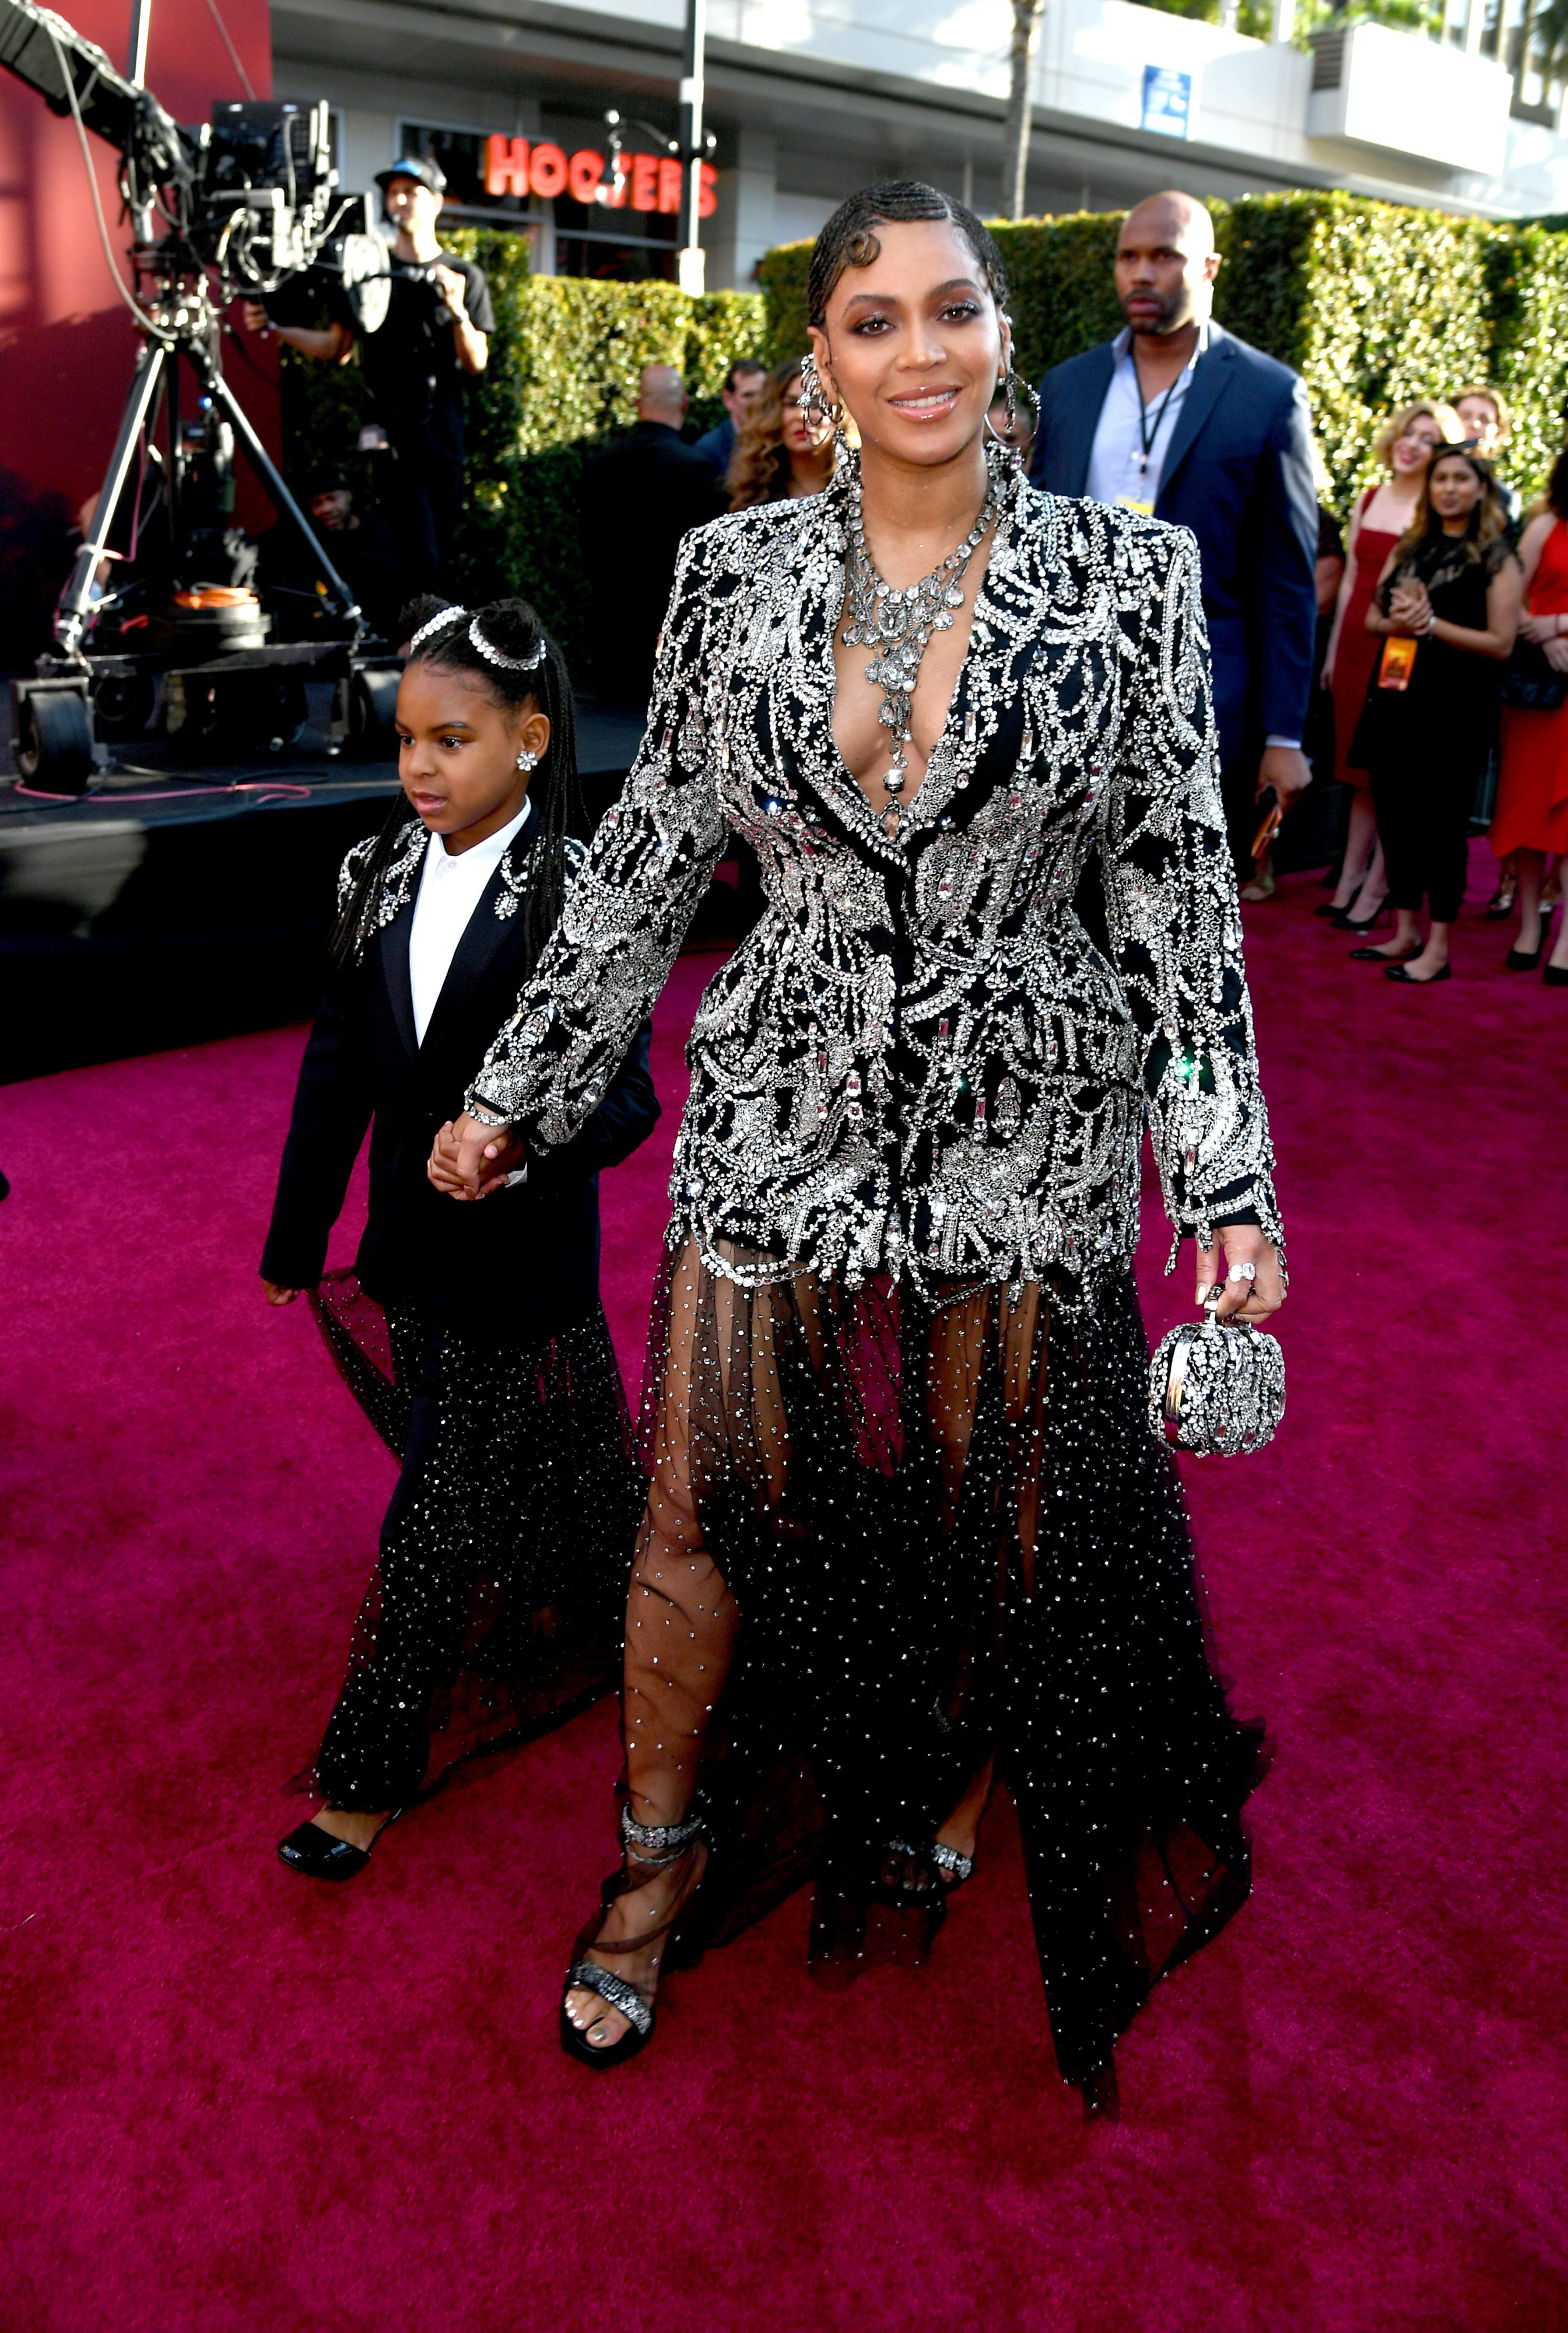 """Blue Ivy Carter is her mother, Beyonce's plus one at the Hollywood premiere of """"The Lion King"""" on July 9, 2019.   Source: Getty Images"""